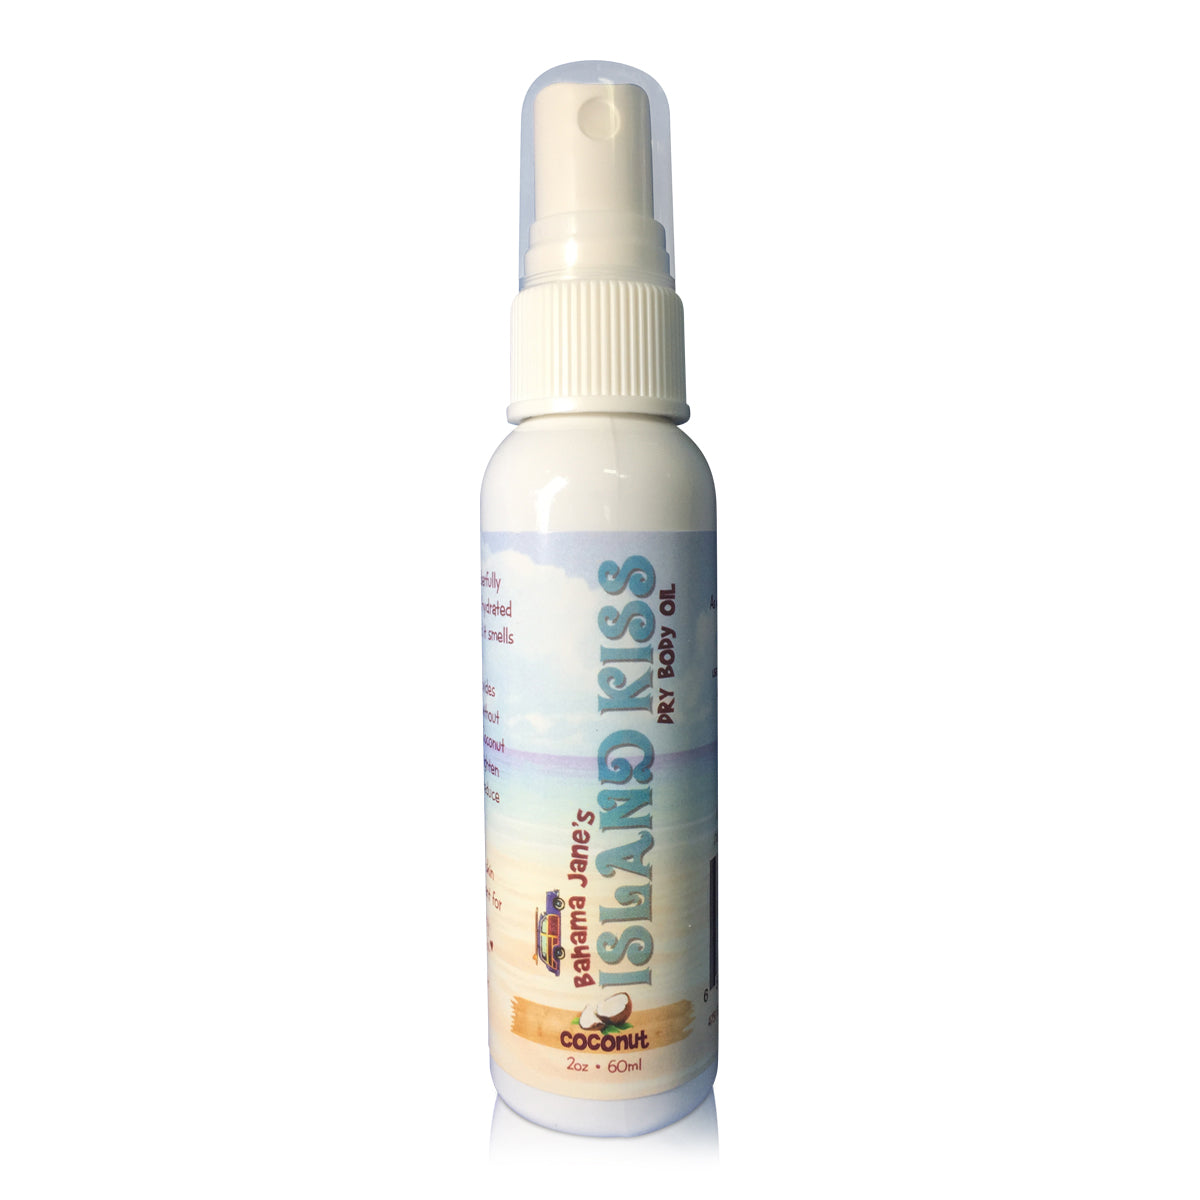 Island Kiss - Coconut - Dry Body Oil